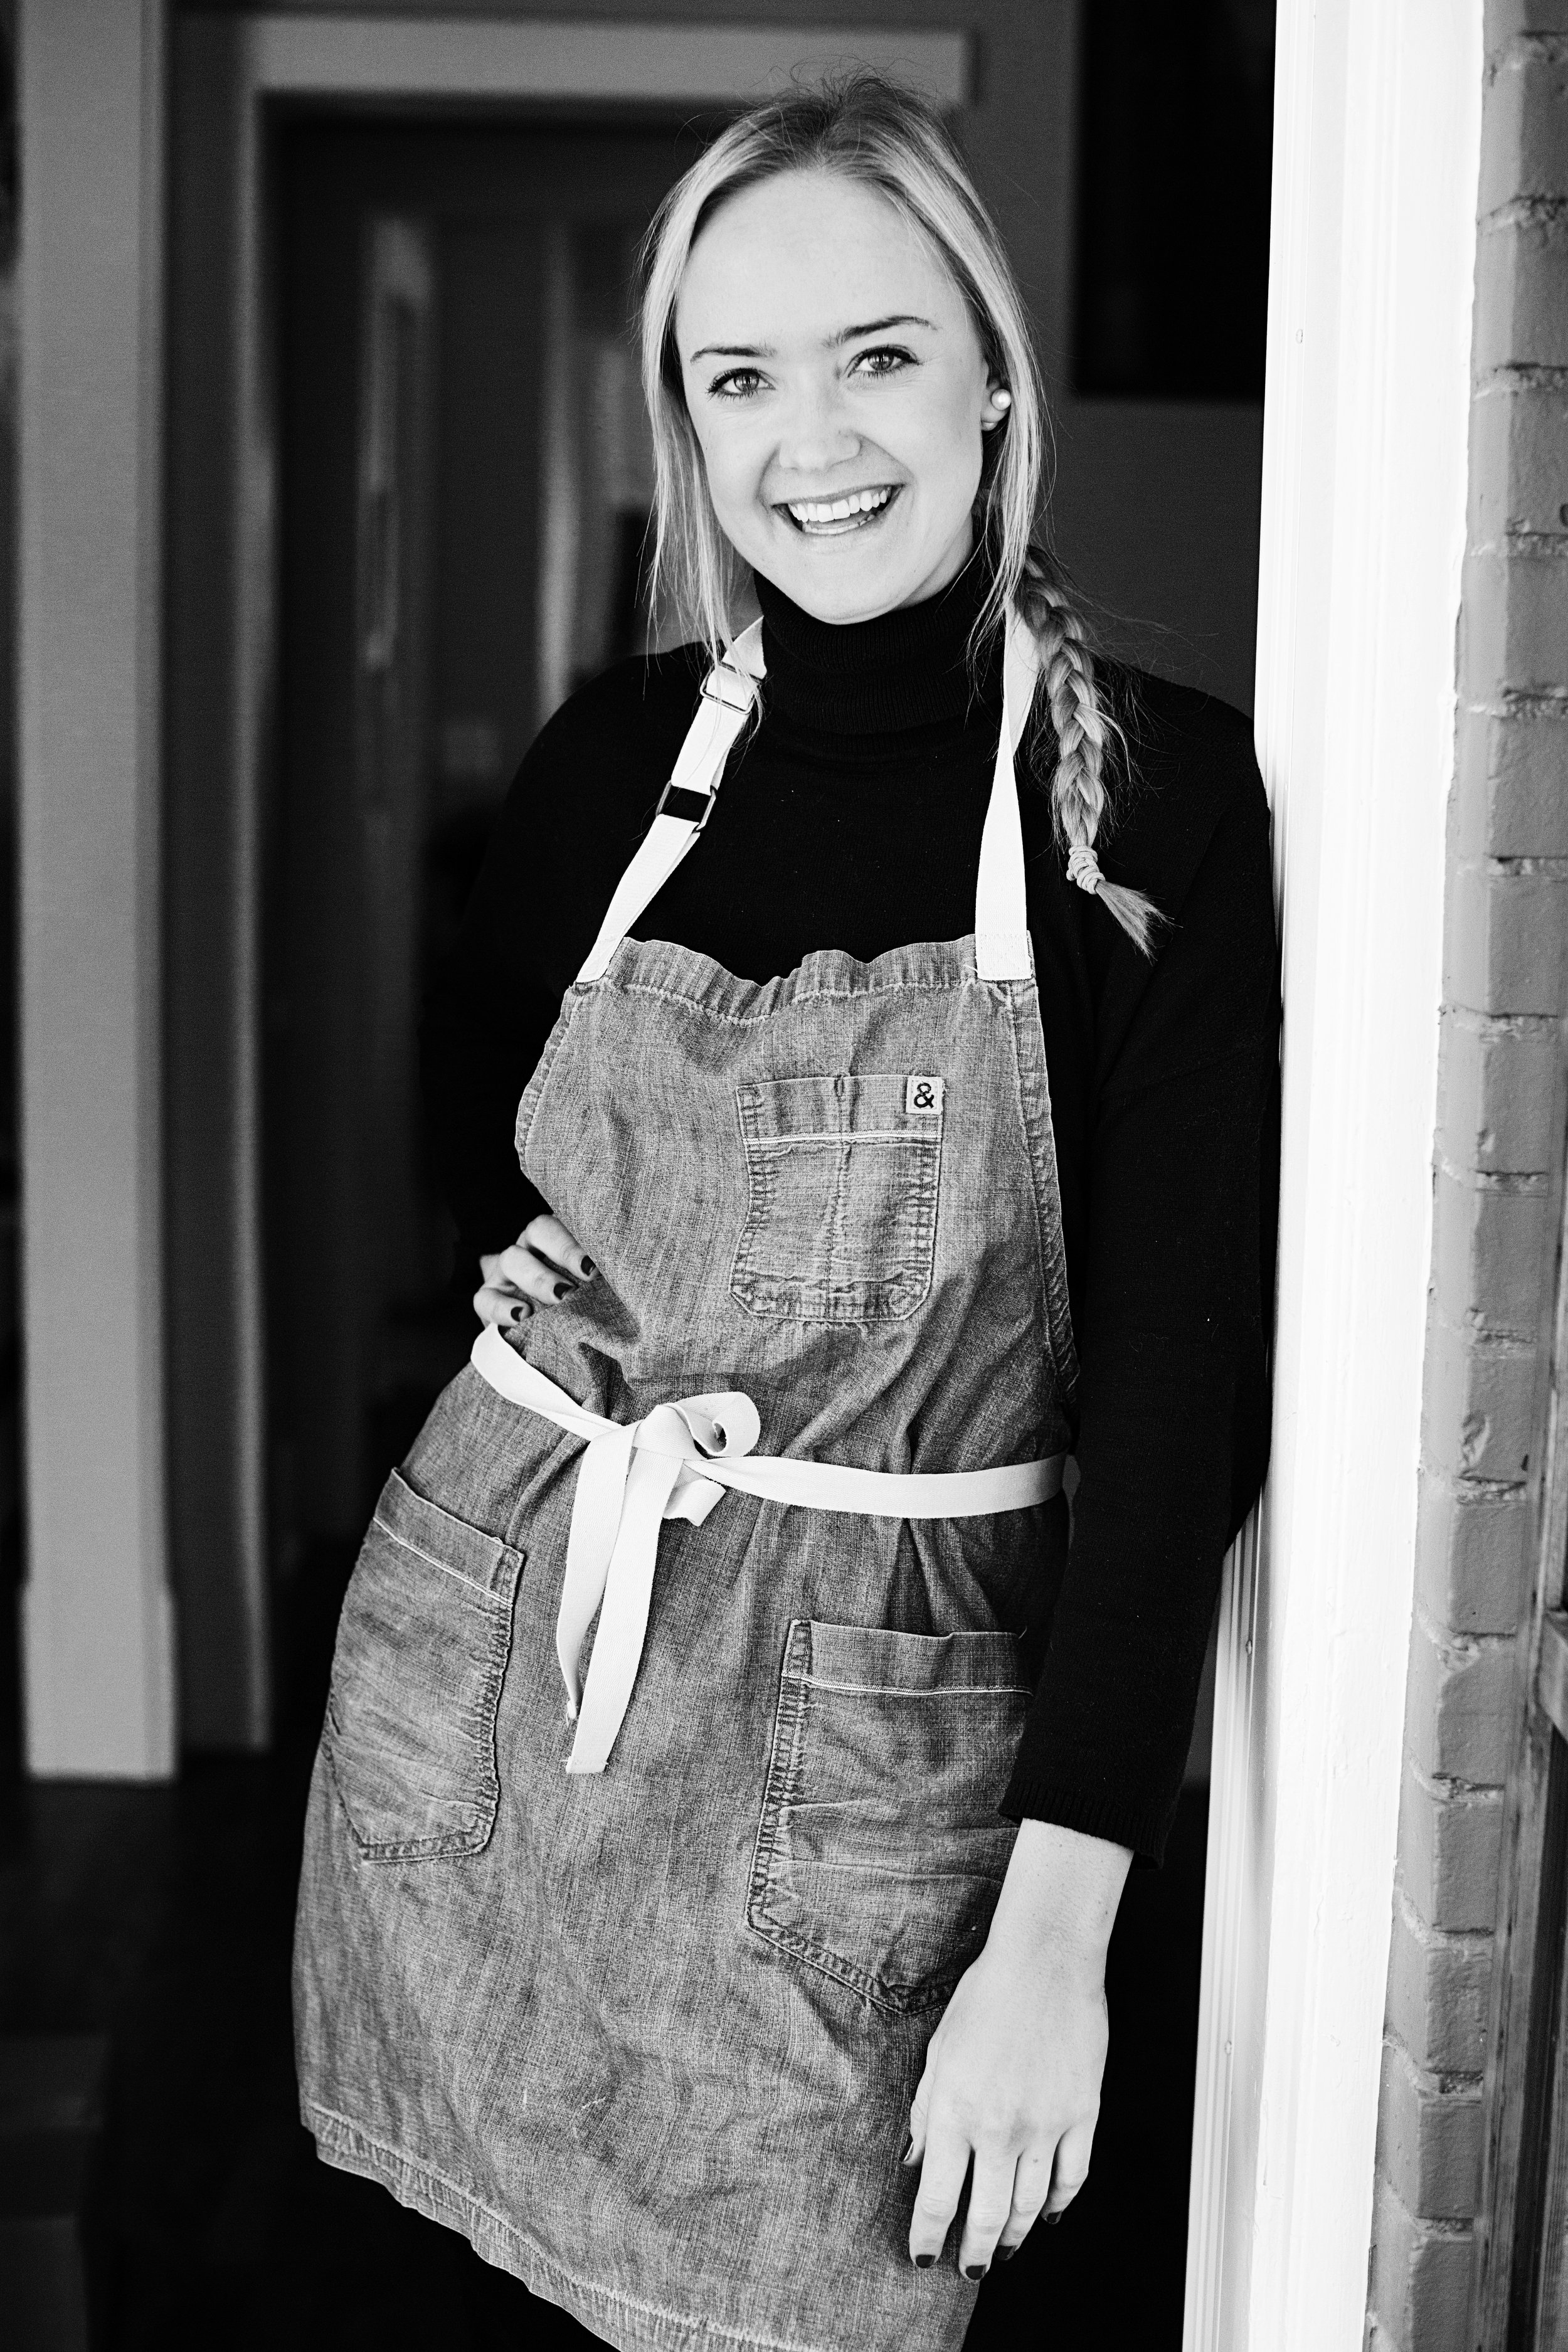 About Kelly  - Food Stylist, Recipe Tester, Recipe Developer, Chef Instructor, Personal Chef and most importantly, lover of all things food. I am proudly from Minnesota. After receiving my Bachelors degree in Business Administration from the University of Minnesota Duluth, I moved to New York City to pursue my passion for food at the well respected International Culinary Center. There I received a Culinary Arts degree. I freelance regularly at